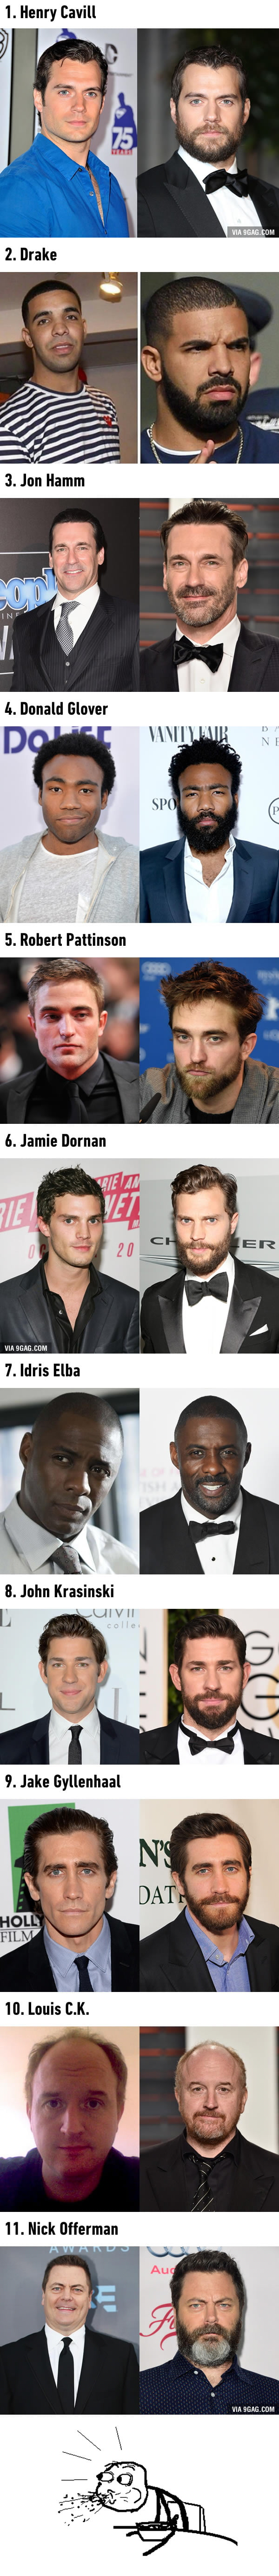 11 Images That Prove That Beard Is Makeup For Men